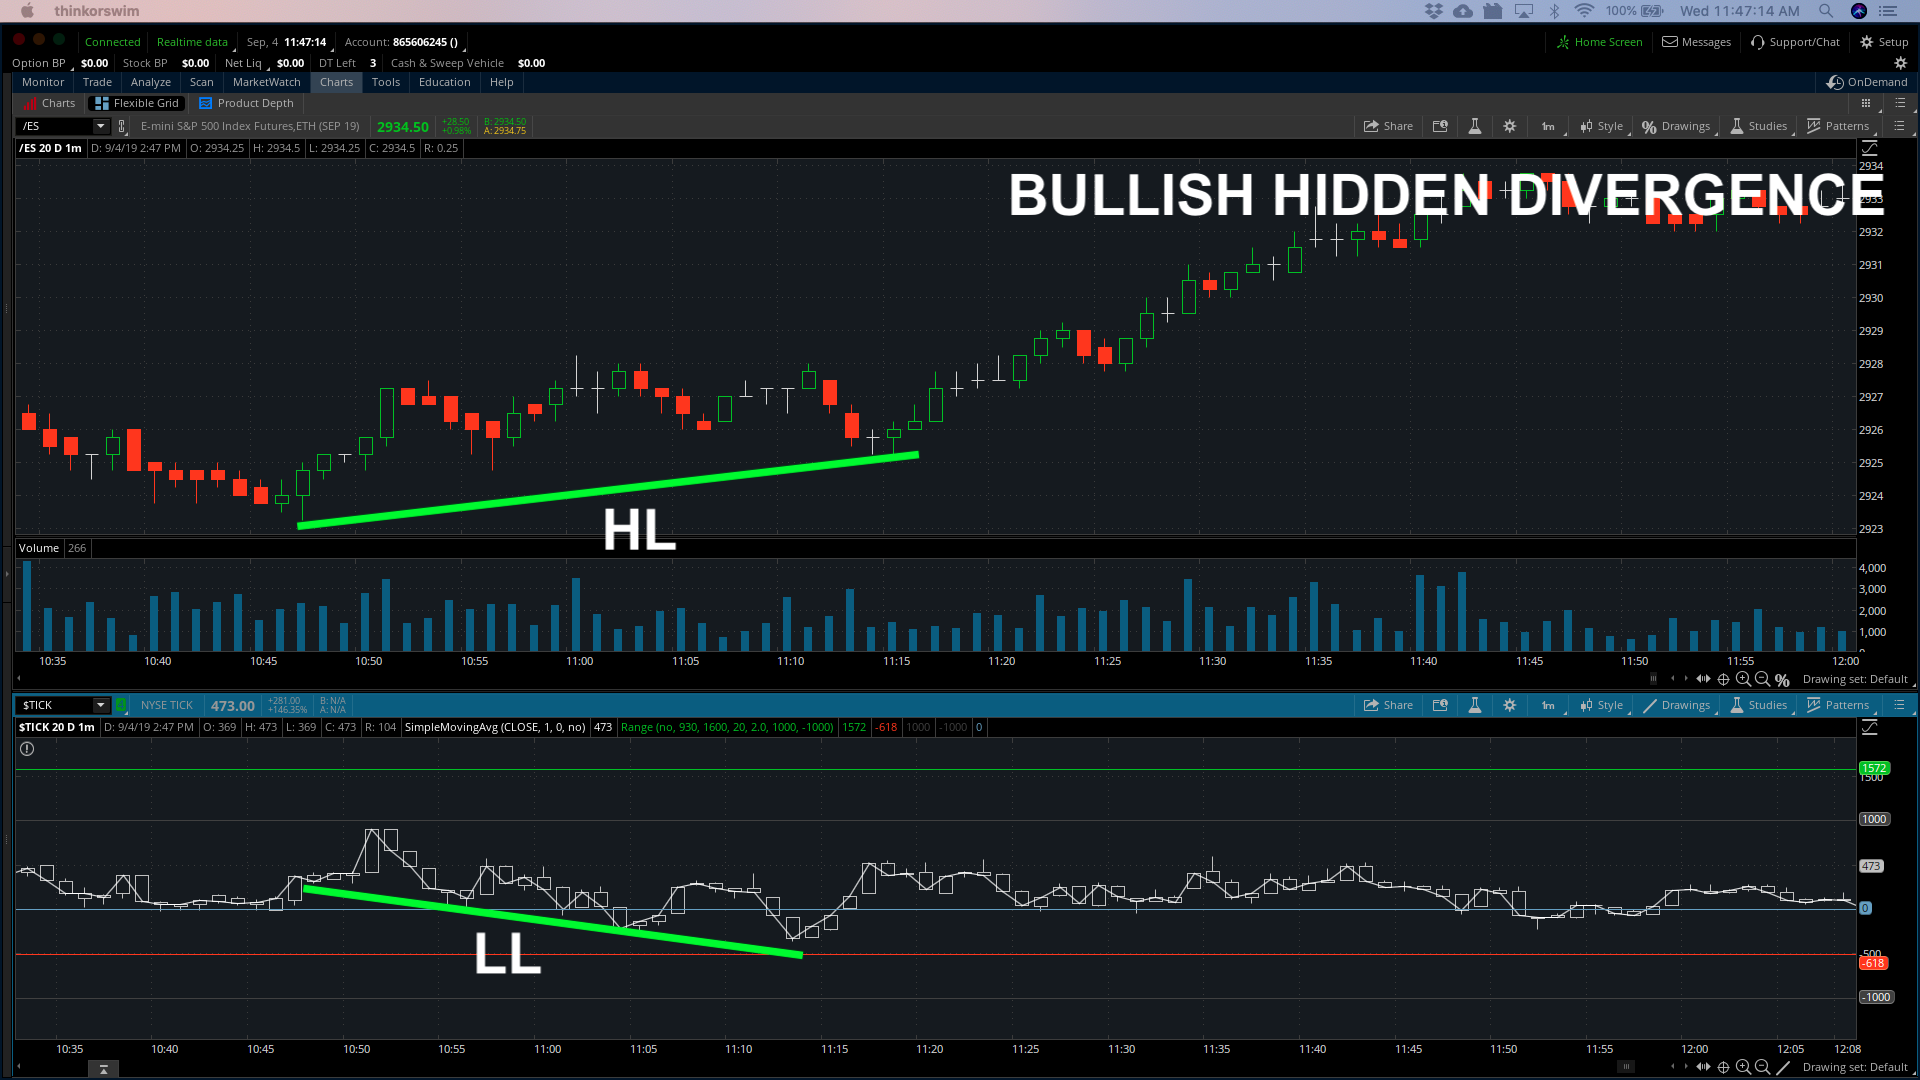 Bullish Hidden Divergence NYSE Tick